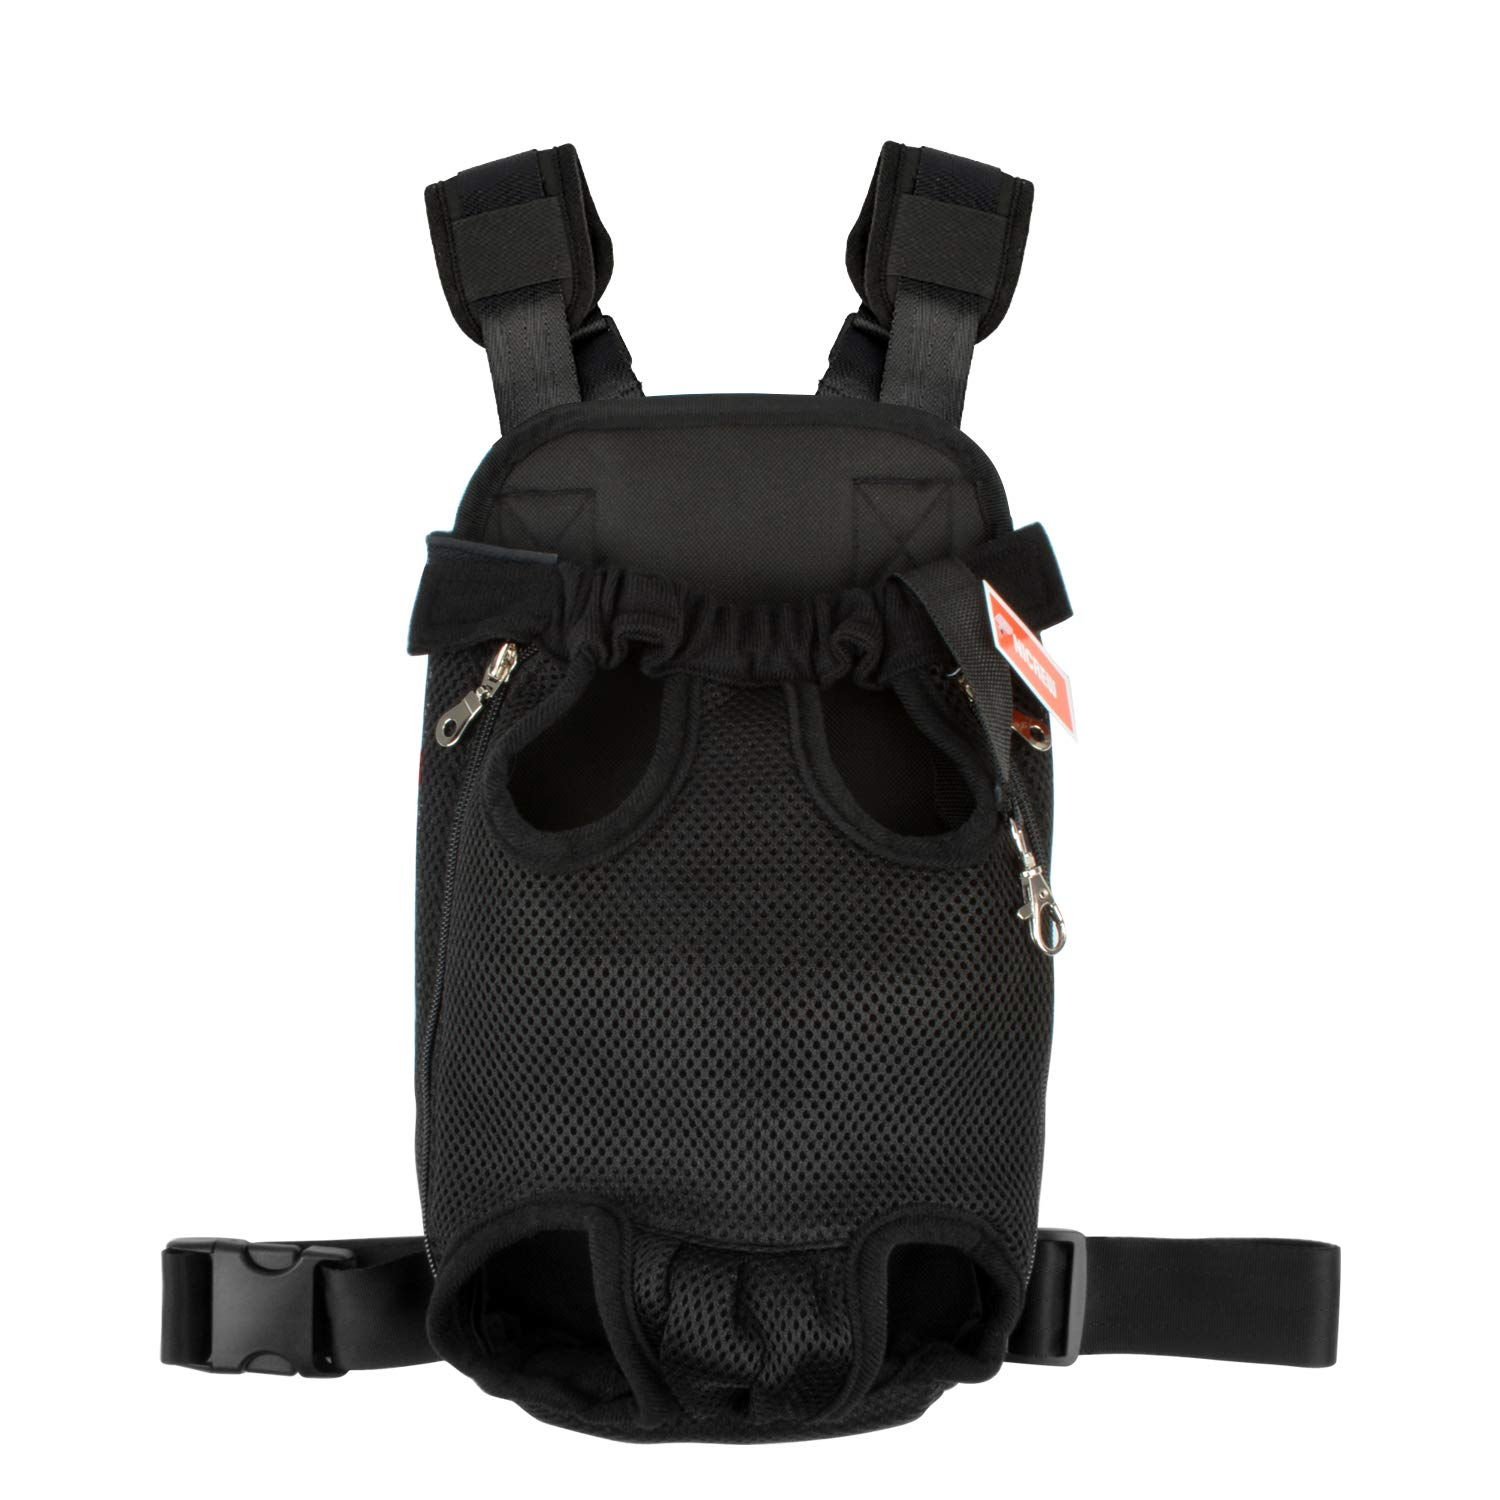 M NICREW Legs Out Front Pack Pet Carrier, Hands-Free Adjustable Backpack, Travel Bag for Small Medium Puppy Doggie Cat Bunny, Easy-Fit for Traveling Hiking Camping